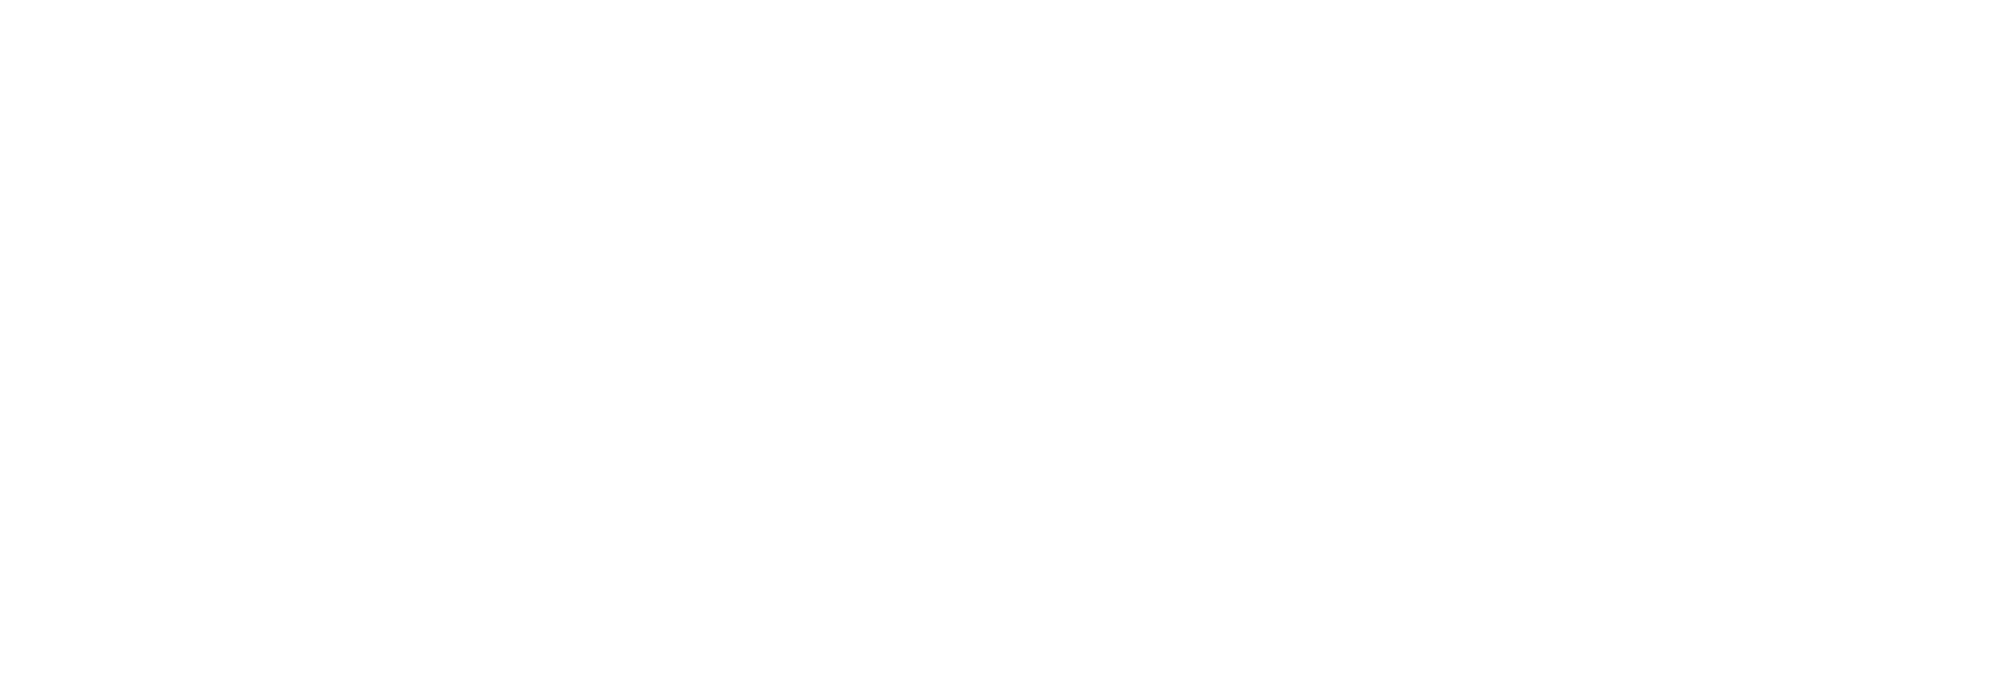 100% SATISFACTION-logo-white.png